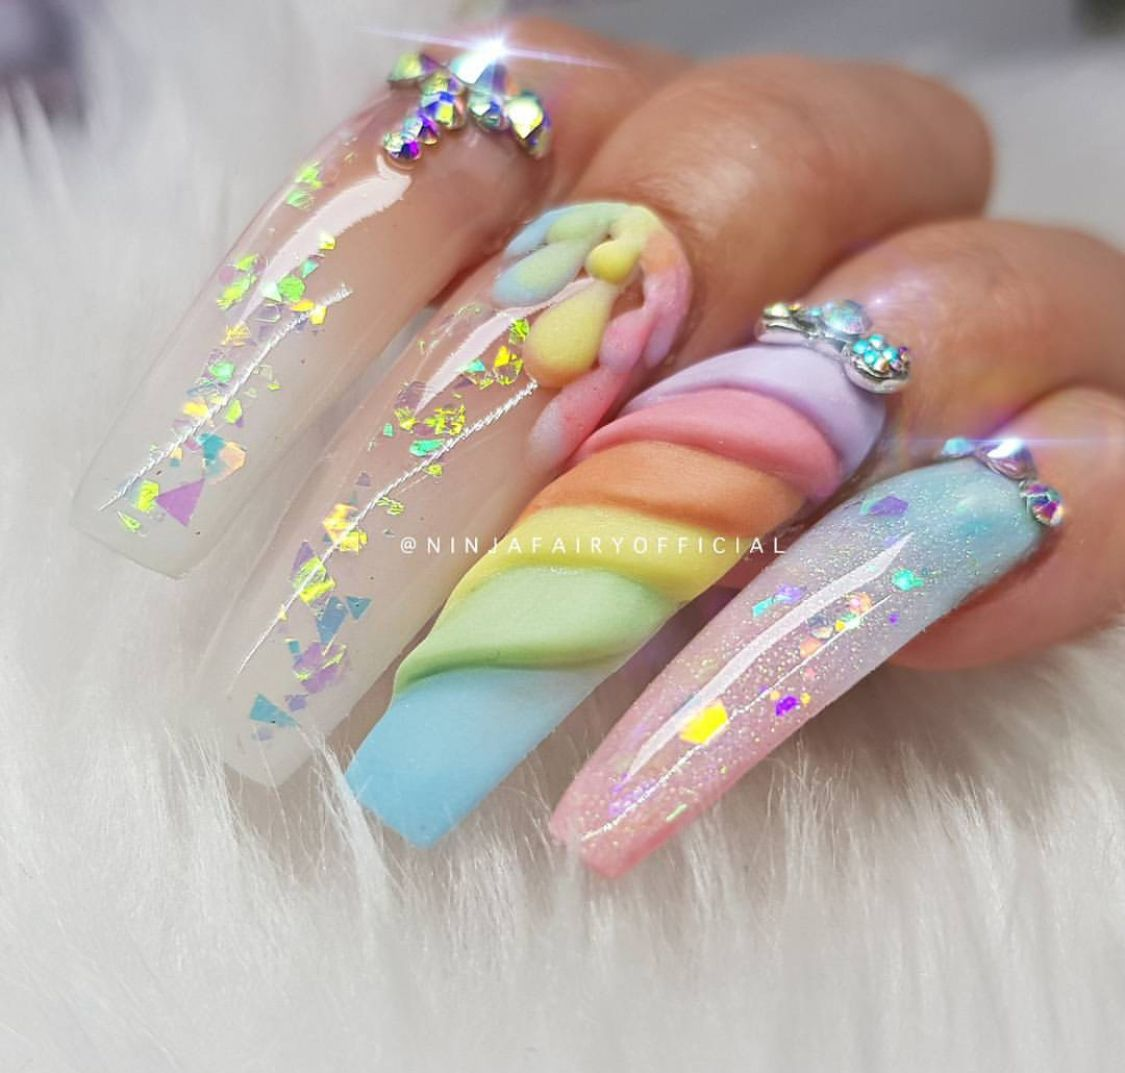 Pin de Dasha Slater en Nails | Pinterest | Diseños de uñas ...